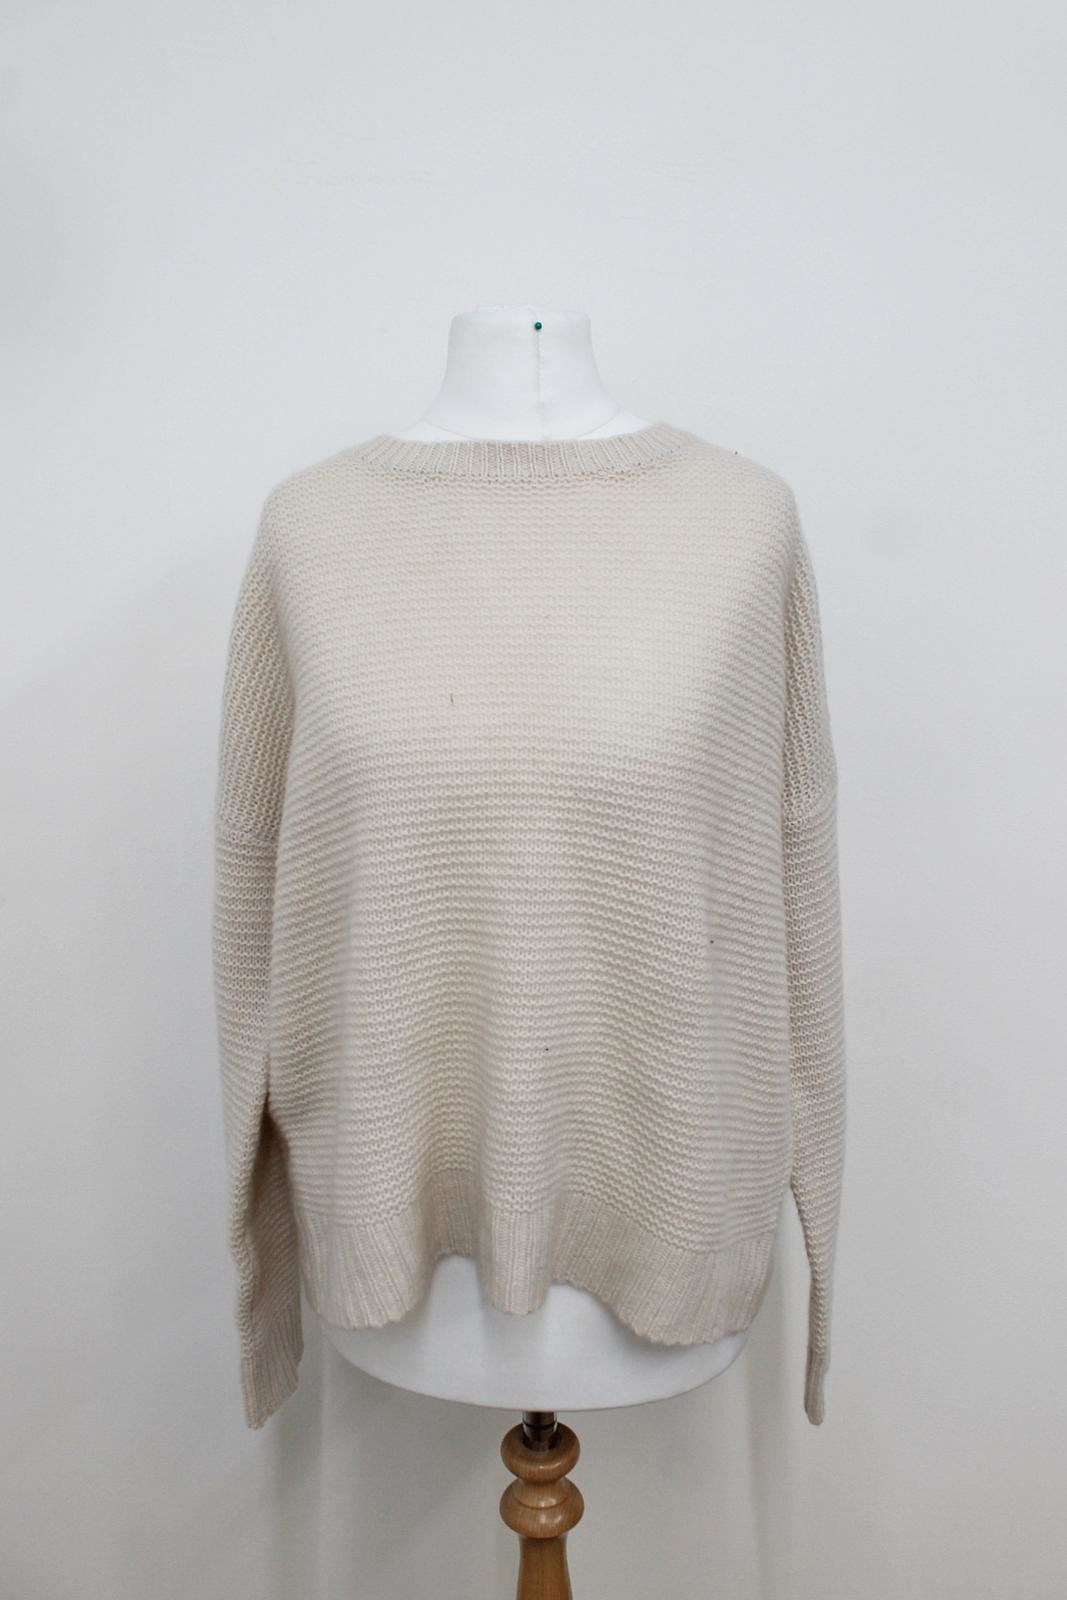 Bnwt 360 Cachemire Femme Beige En Maille Dos Ouvert Cashmere Pull Taille Xs